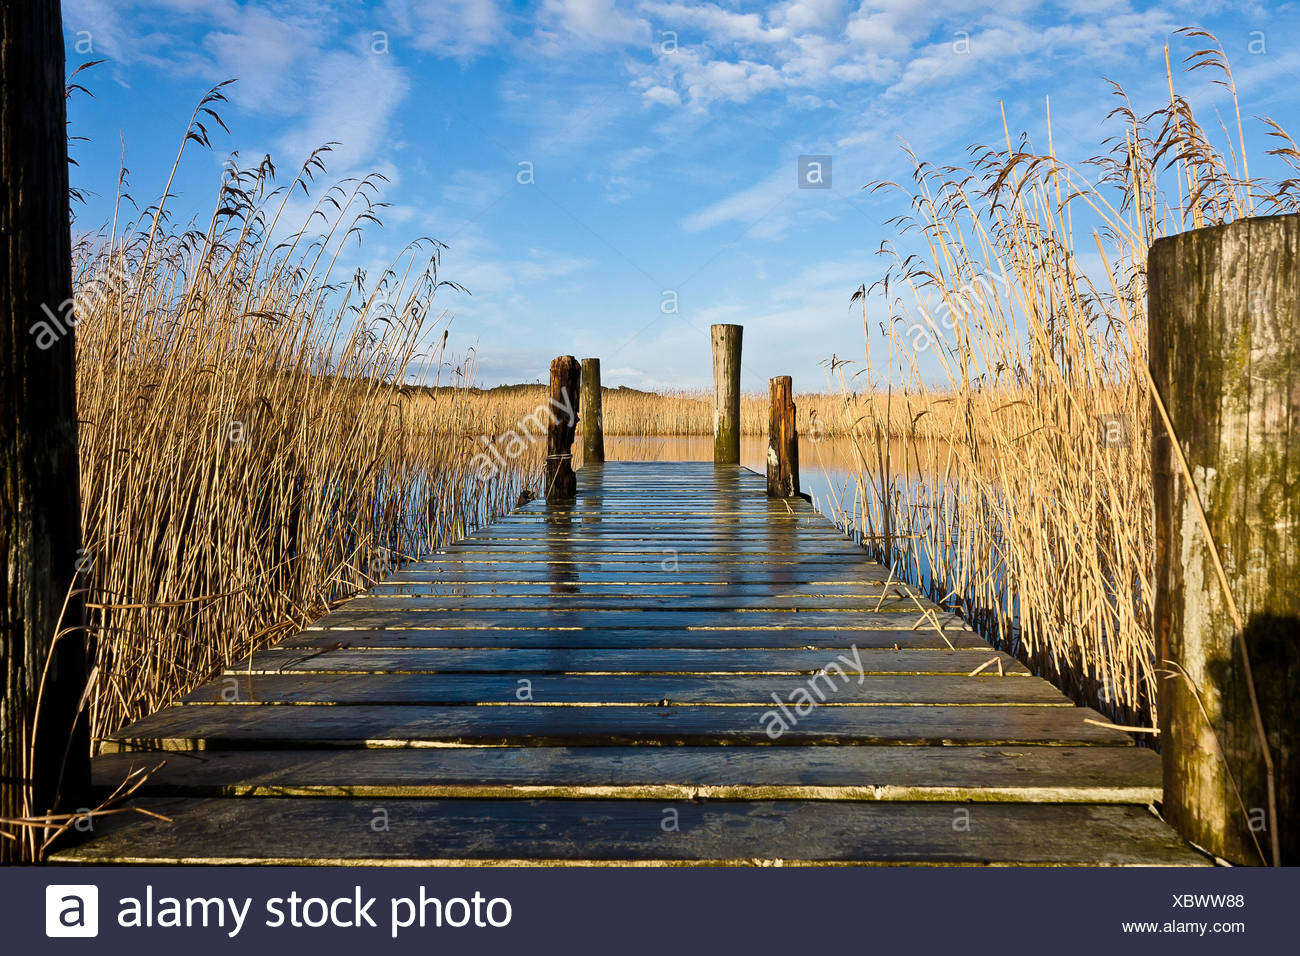 A pier at a lake near Norre Nebel - Stock Image